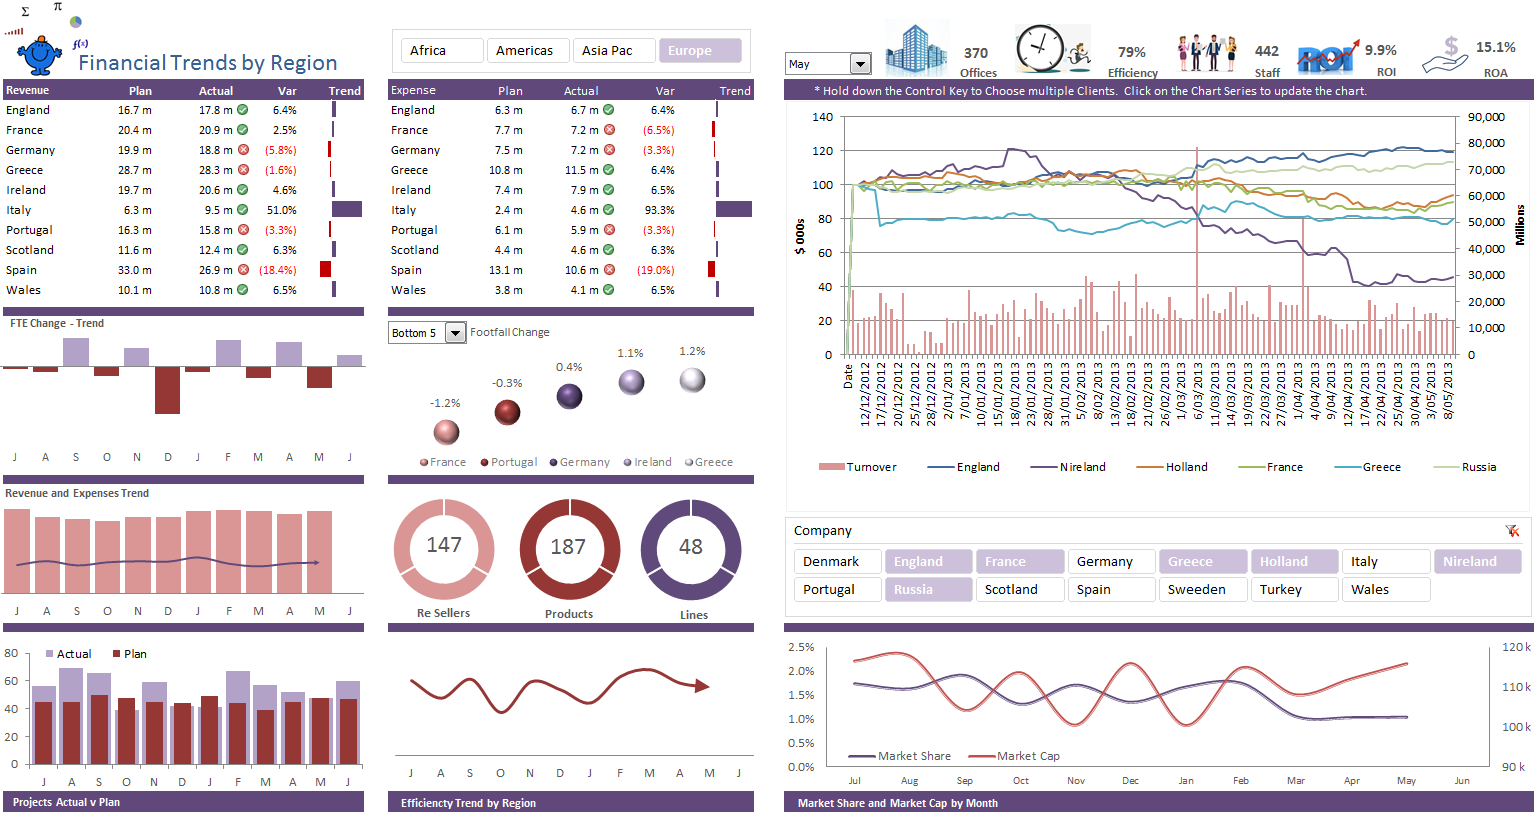 With more data I could add more charting options. This looks a lot better while still having a nod to the old dashboard. Now that I have started I can see so many more are short of my current standard. Sigh - it is a big job.